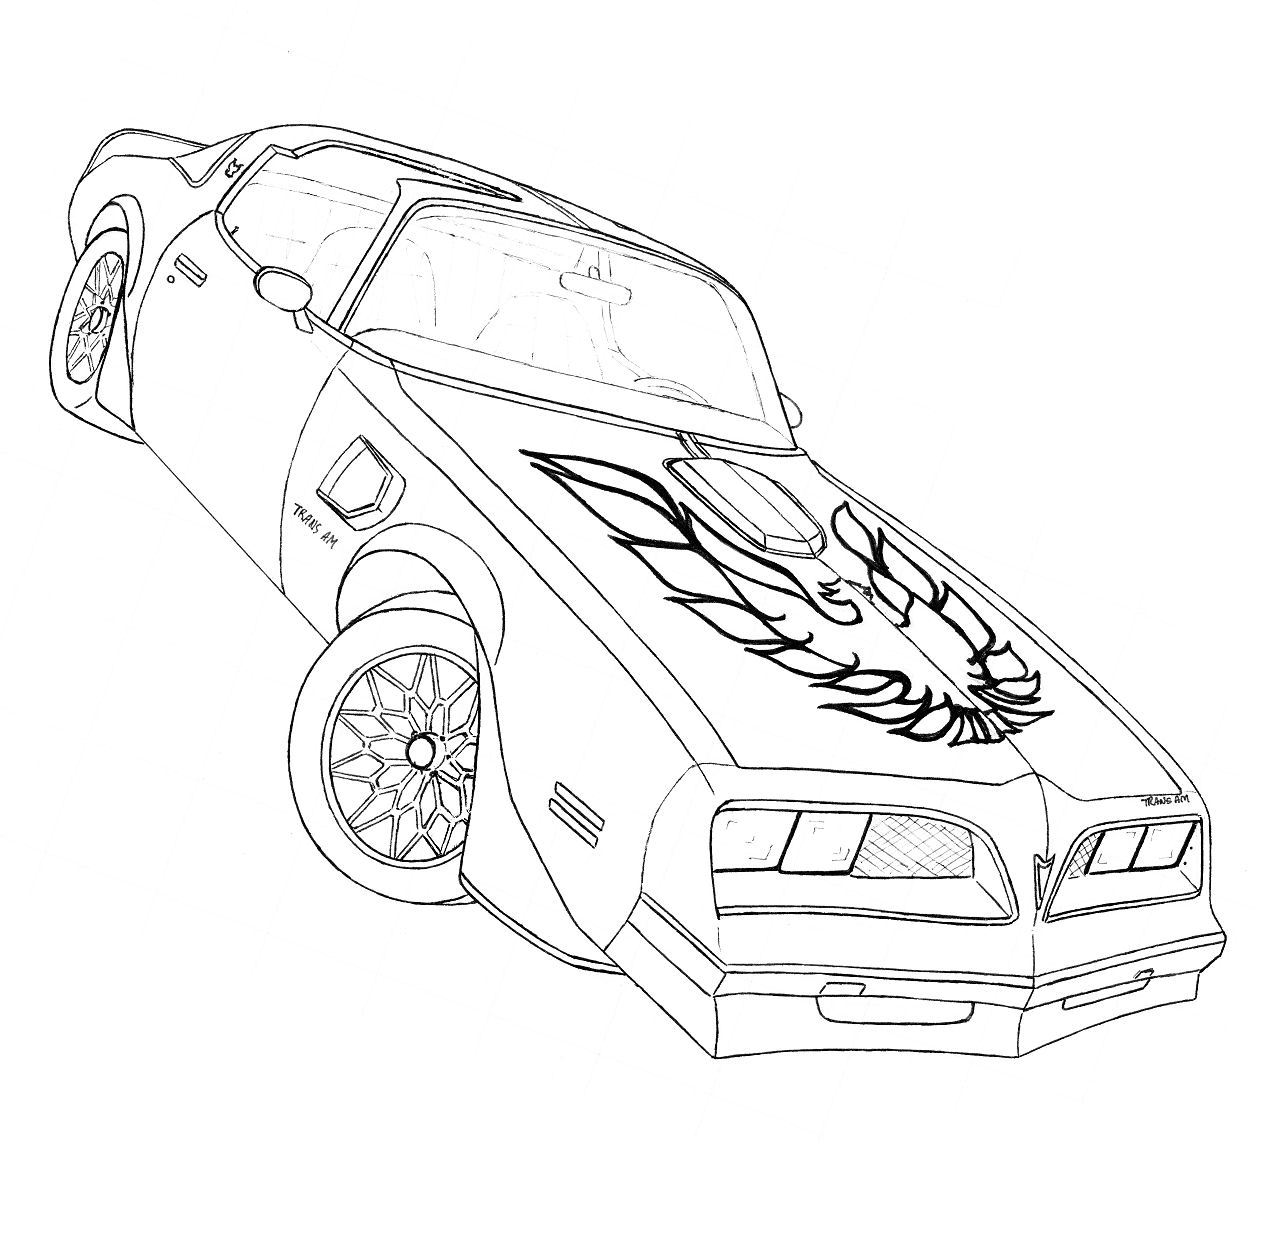 trans am drawing at getdrawings com